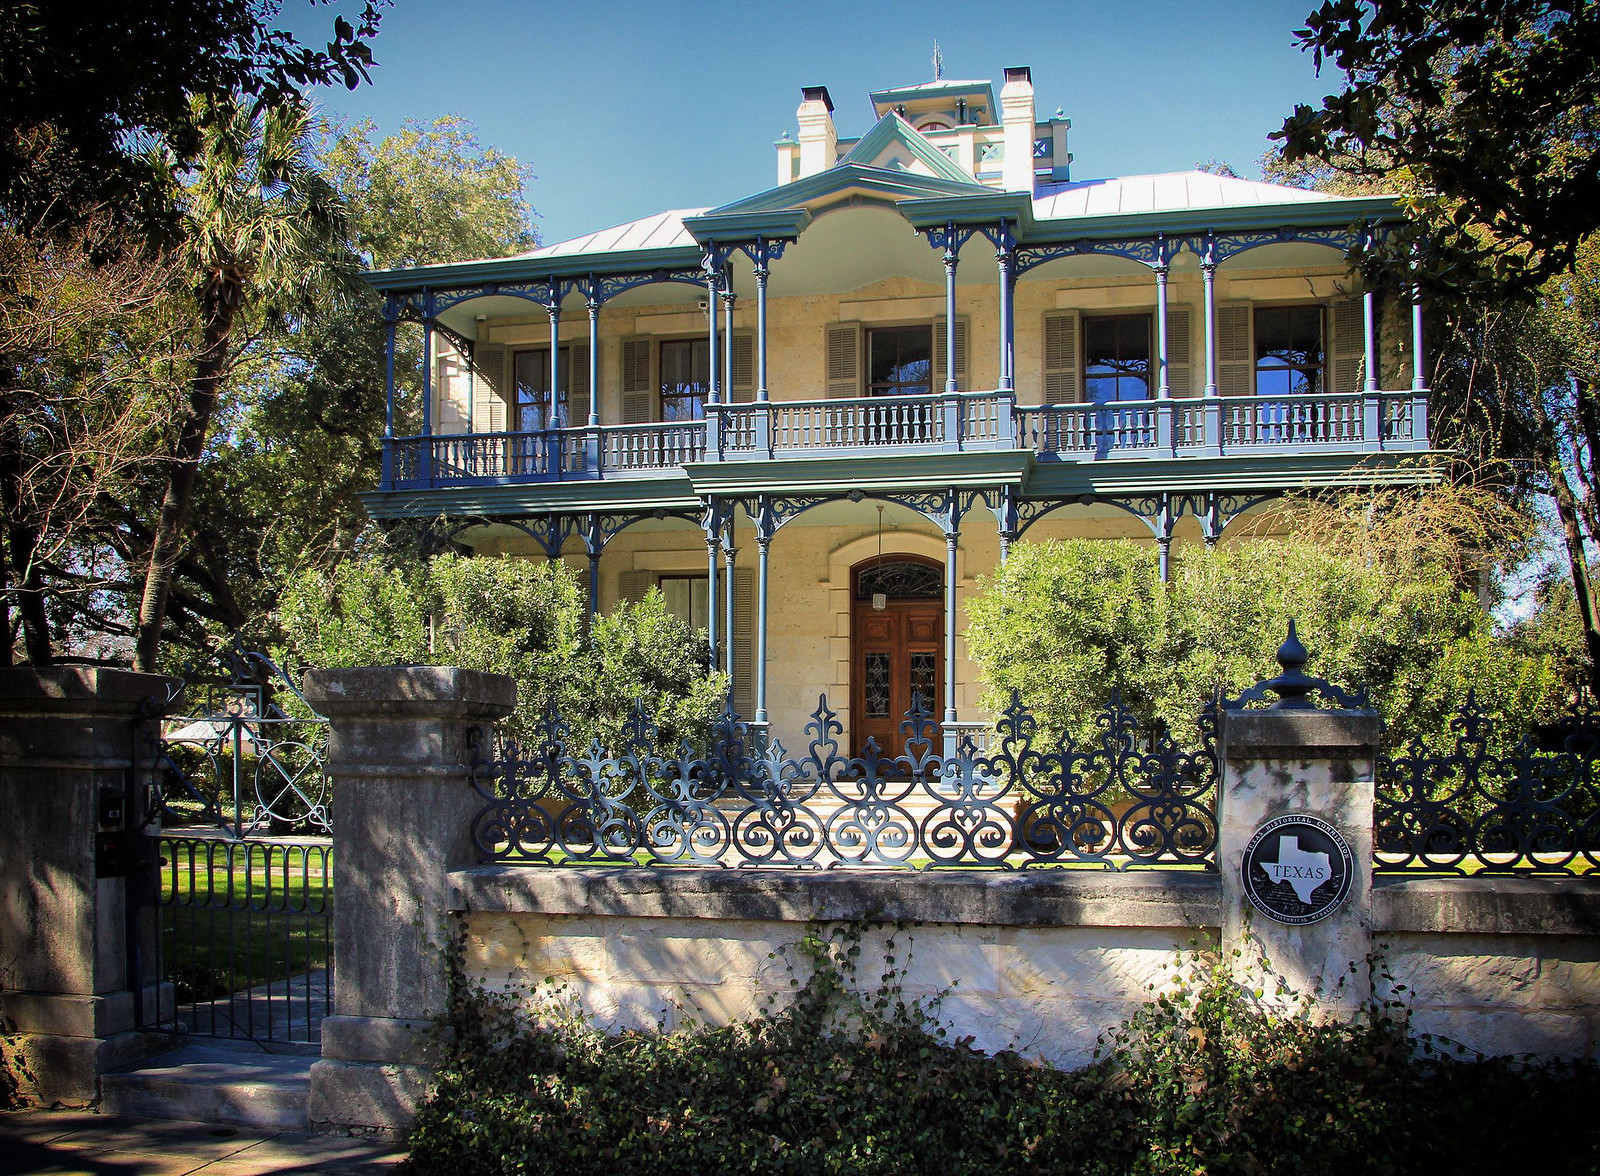 Carl Wilhelm August Groos House, San Antonio, Texas. Credit Larry D. Moore